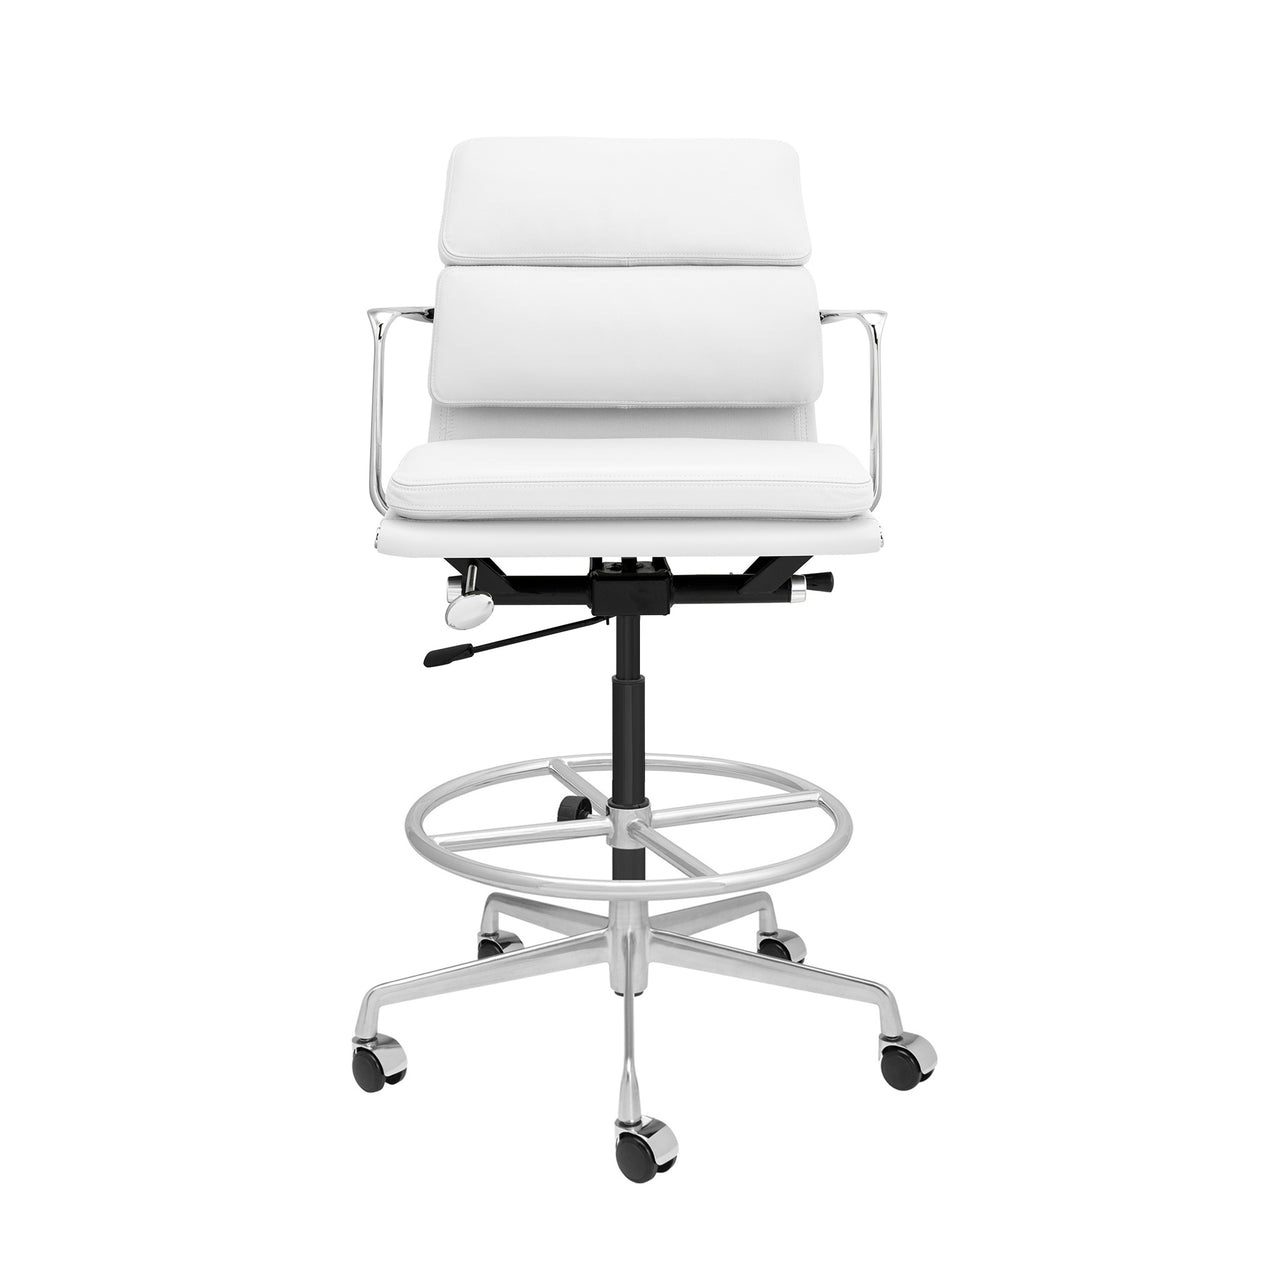 SOHO Pro Soft Pad Drafting Chair (White Italian Leather)